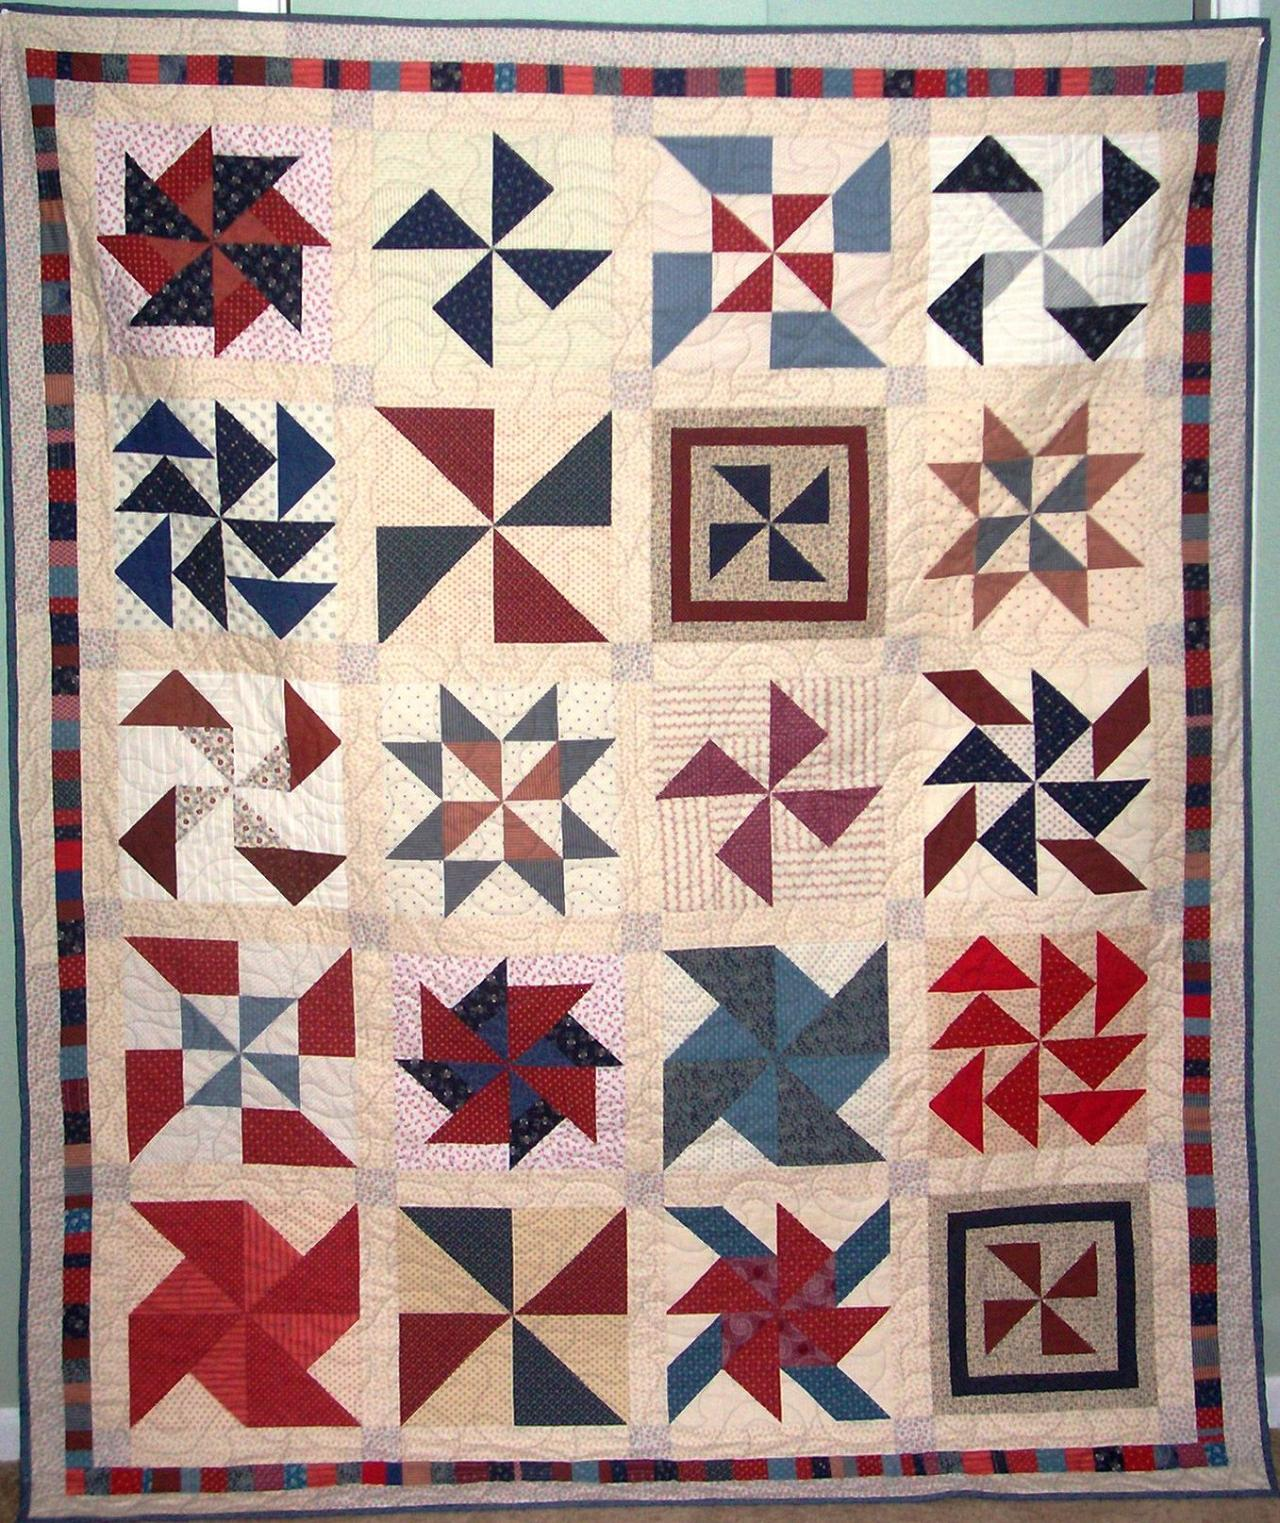 Quilt Patterns For Quilts Of Valor : The Quilting Rack - Quilts of Valor